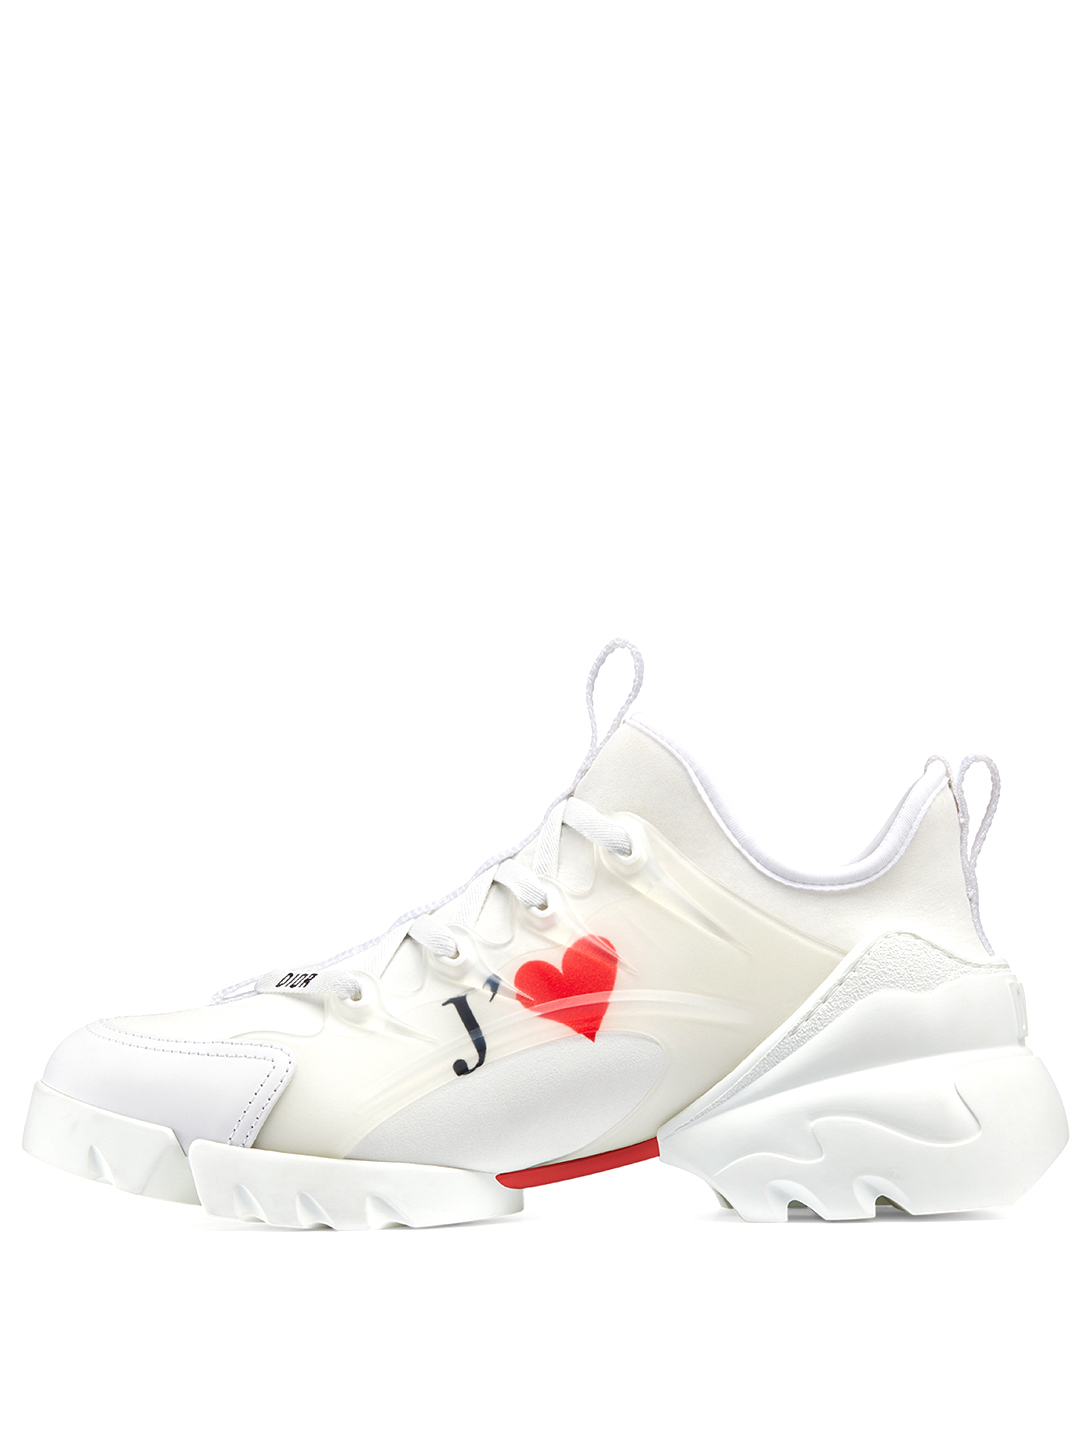 DIOR D-Connect Dioramour Technical Fabric Sneakers Women's White